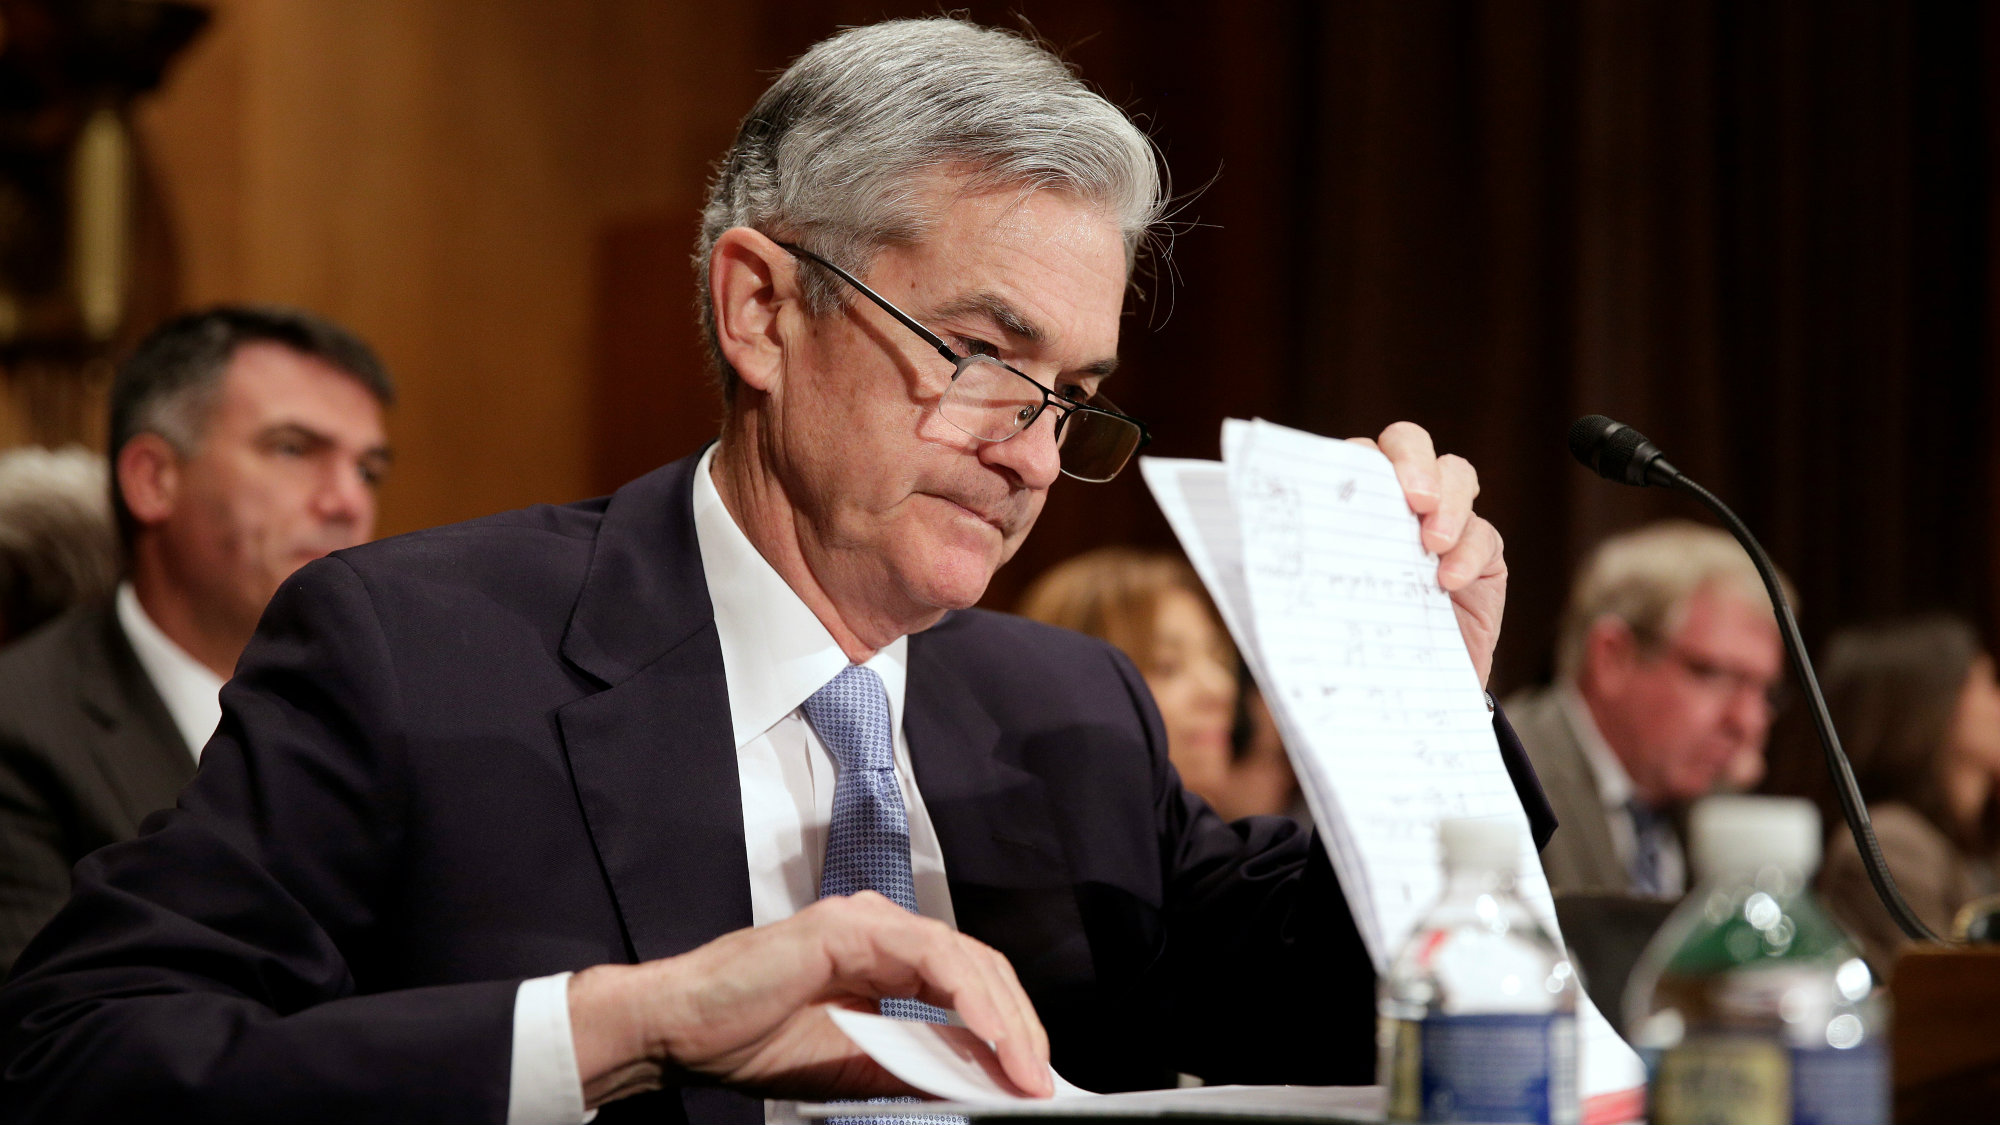 Jerome H. Powell, a governor on the board of the Federal Reserve System, prepares to testify to the Senate Banking Committee